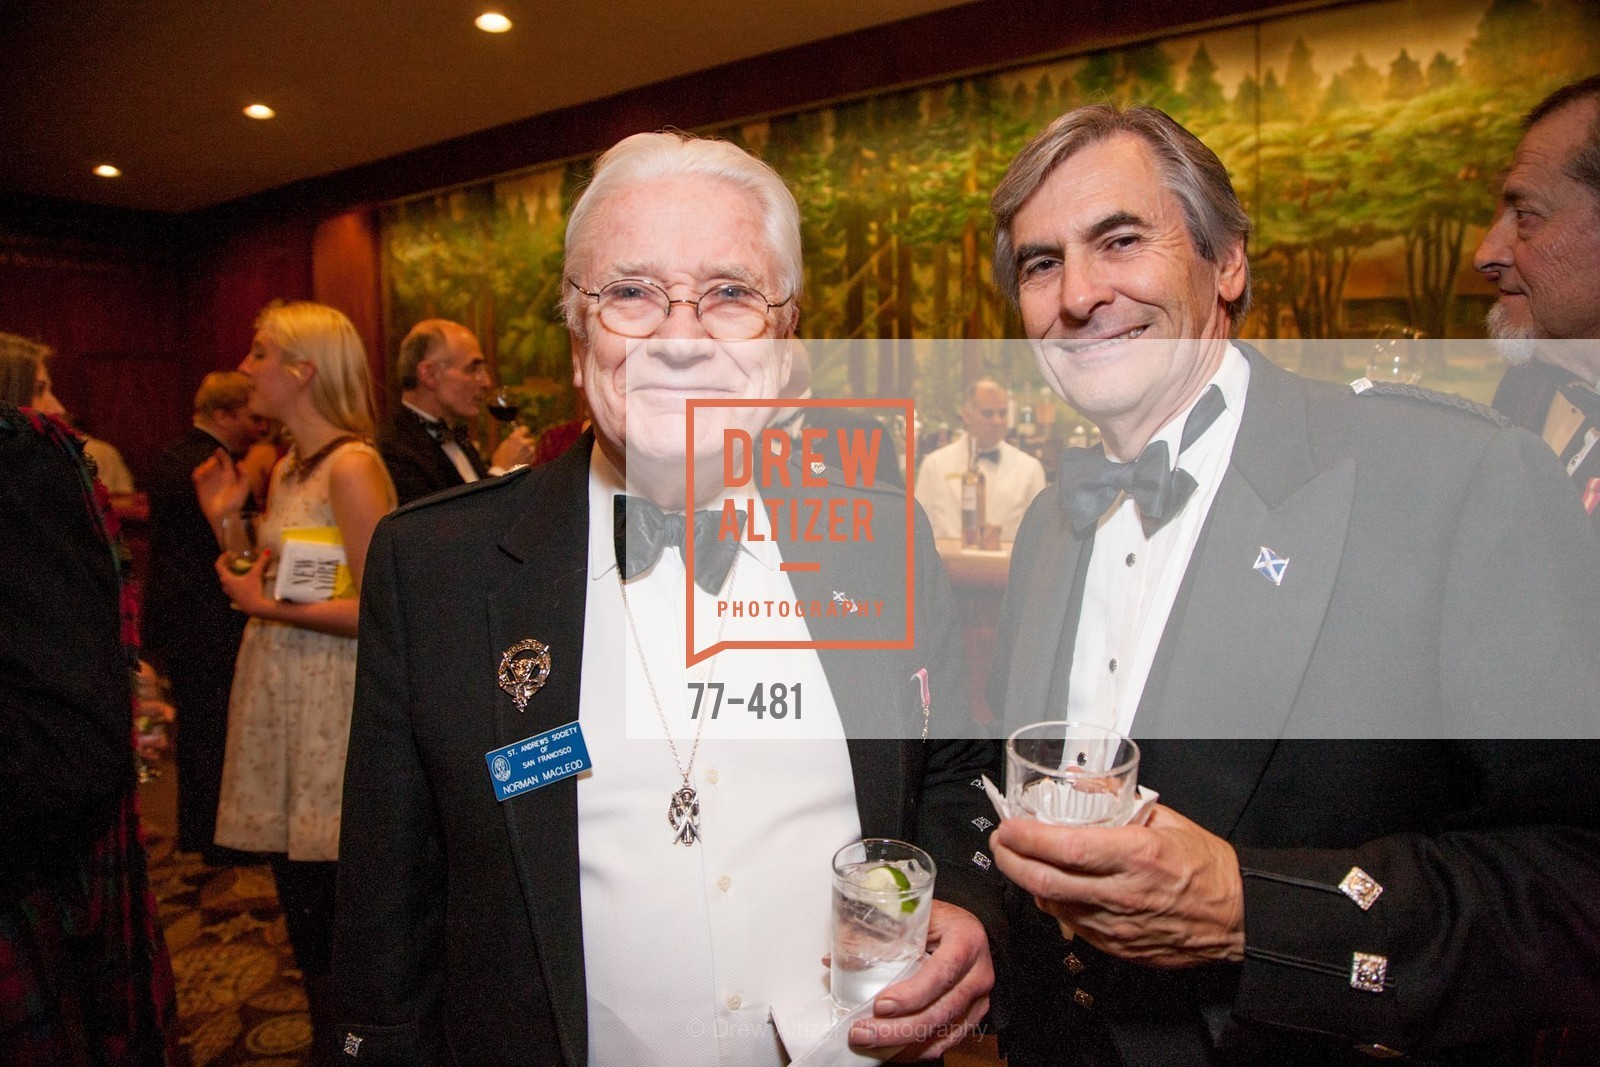 Norman MacLeod, John McCorkindale, ST. ANDREW'S SOCIETY OF SAN FRANCISCO'S Traditional Burns Night Supper 2014, US. US, January 25th, 2014,Drew Altizer, Drew Altizer Photography, full-service agency, private events, San Francisco photographer, photographer california